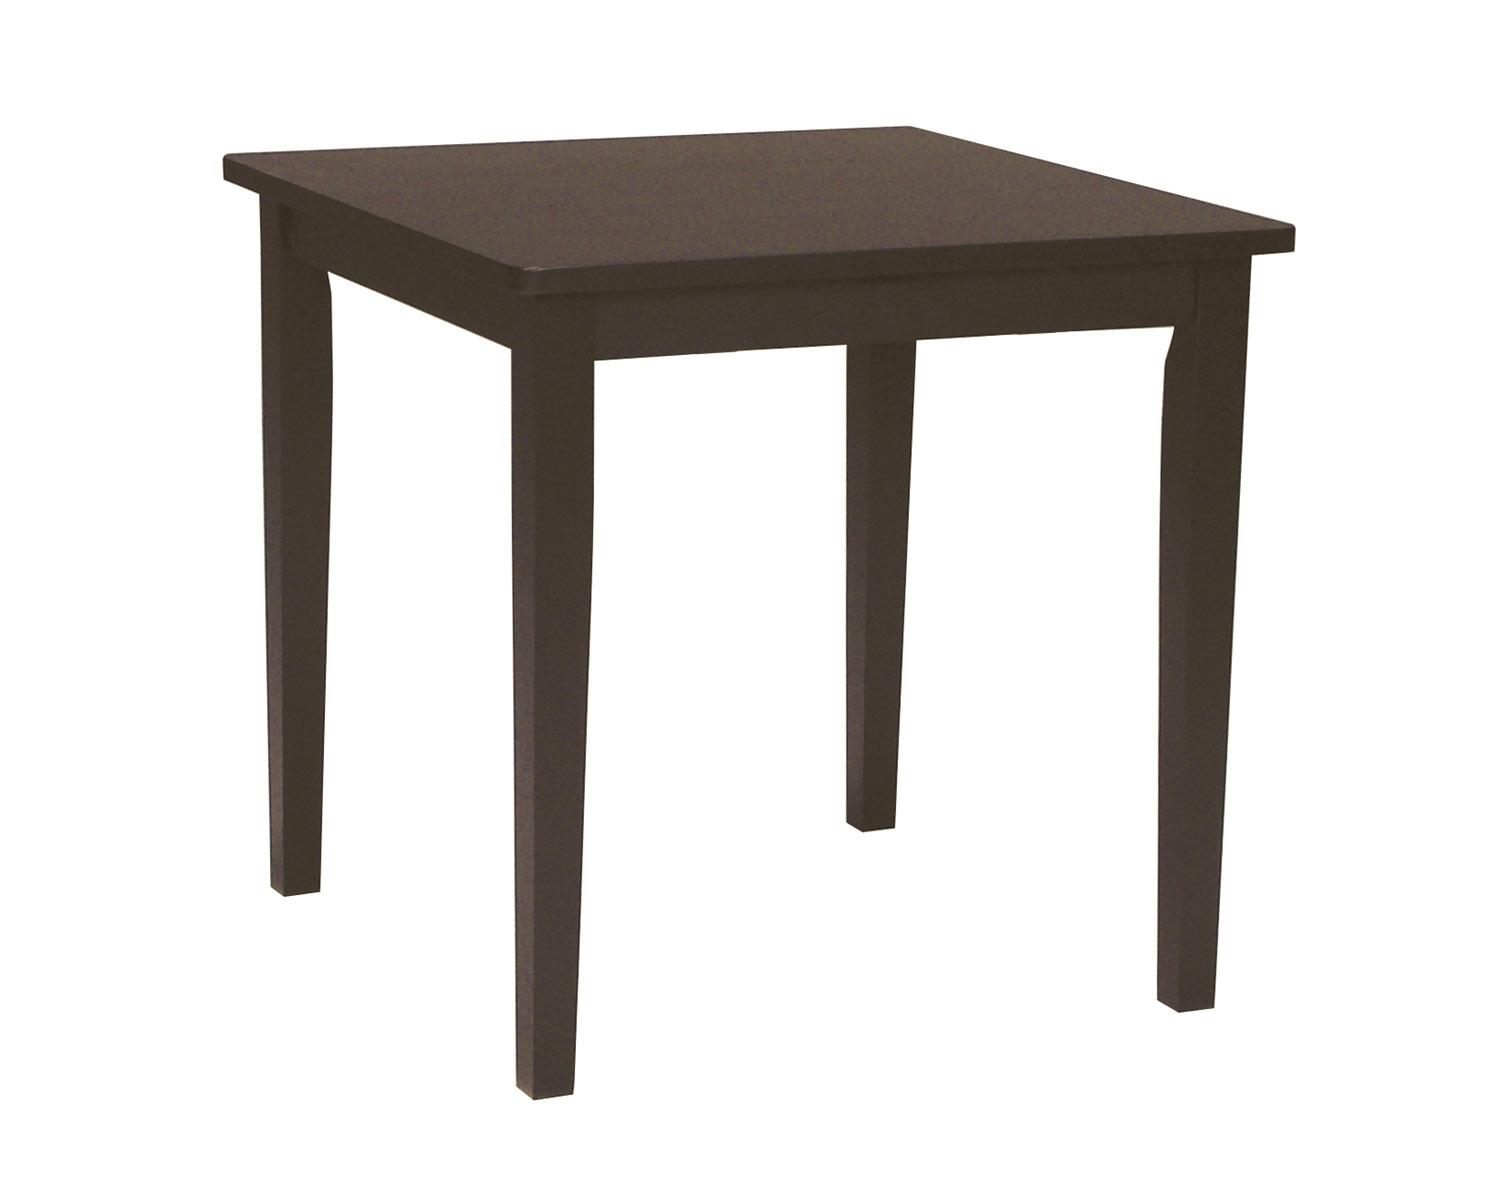 John Thomas Dining Essentials Casual Square Table - Item Number: T15-3030